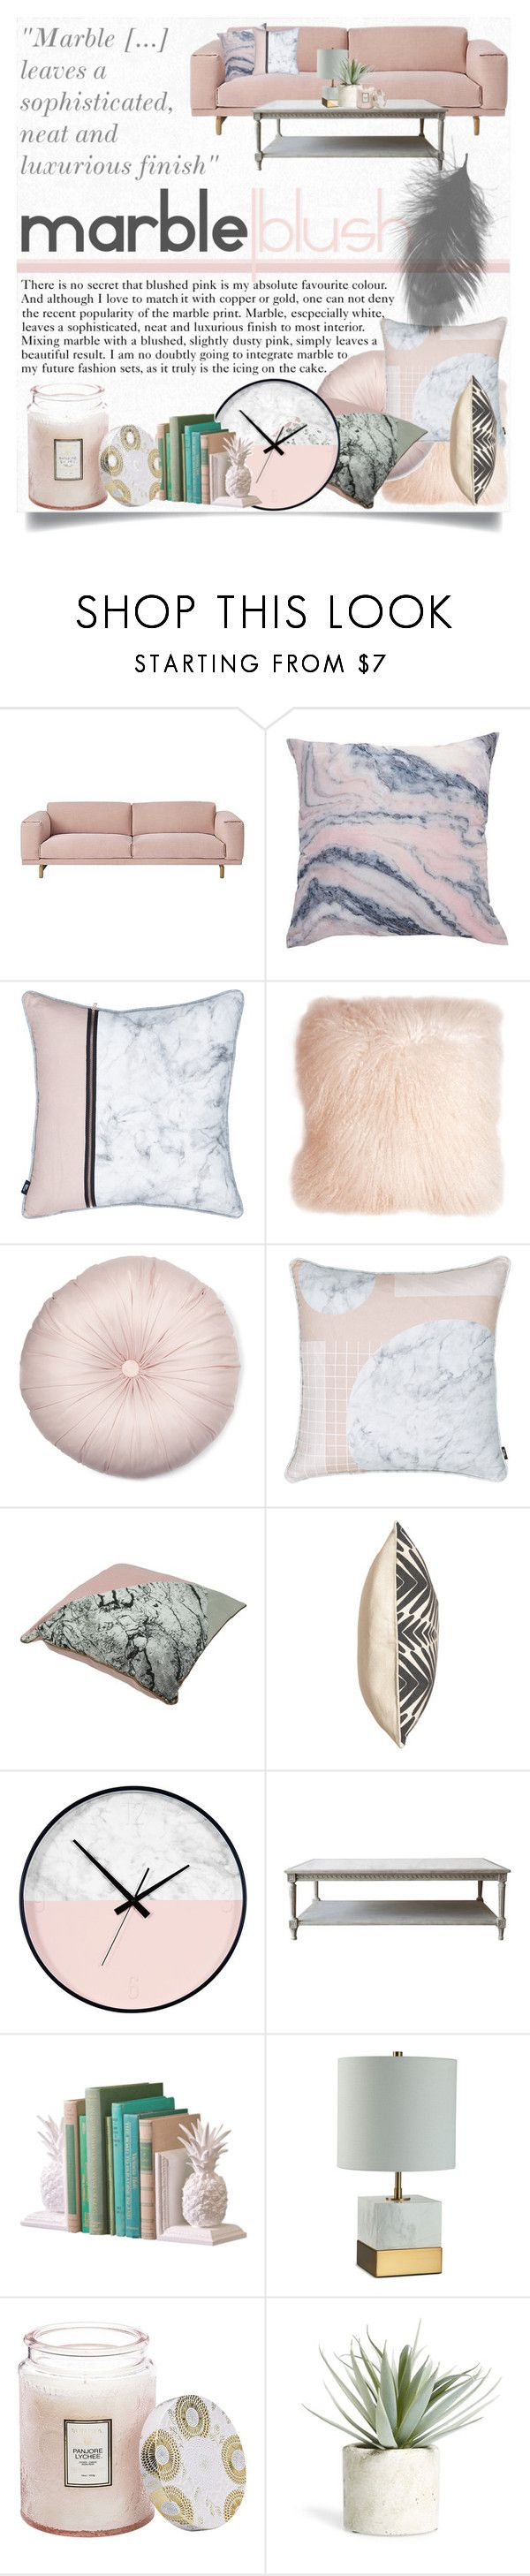 """Blush X Marble"" by karolineacc ❤ liked on Polyvore featuring interior, interiors, interior design, home, home decor, interior decorating, Muuto, Pillow Decor, Voluspa and Allstate Floral"